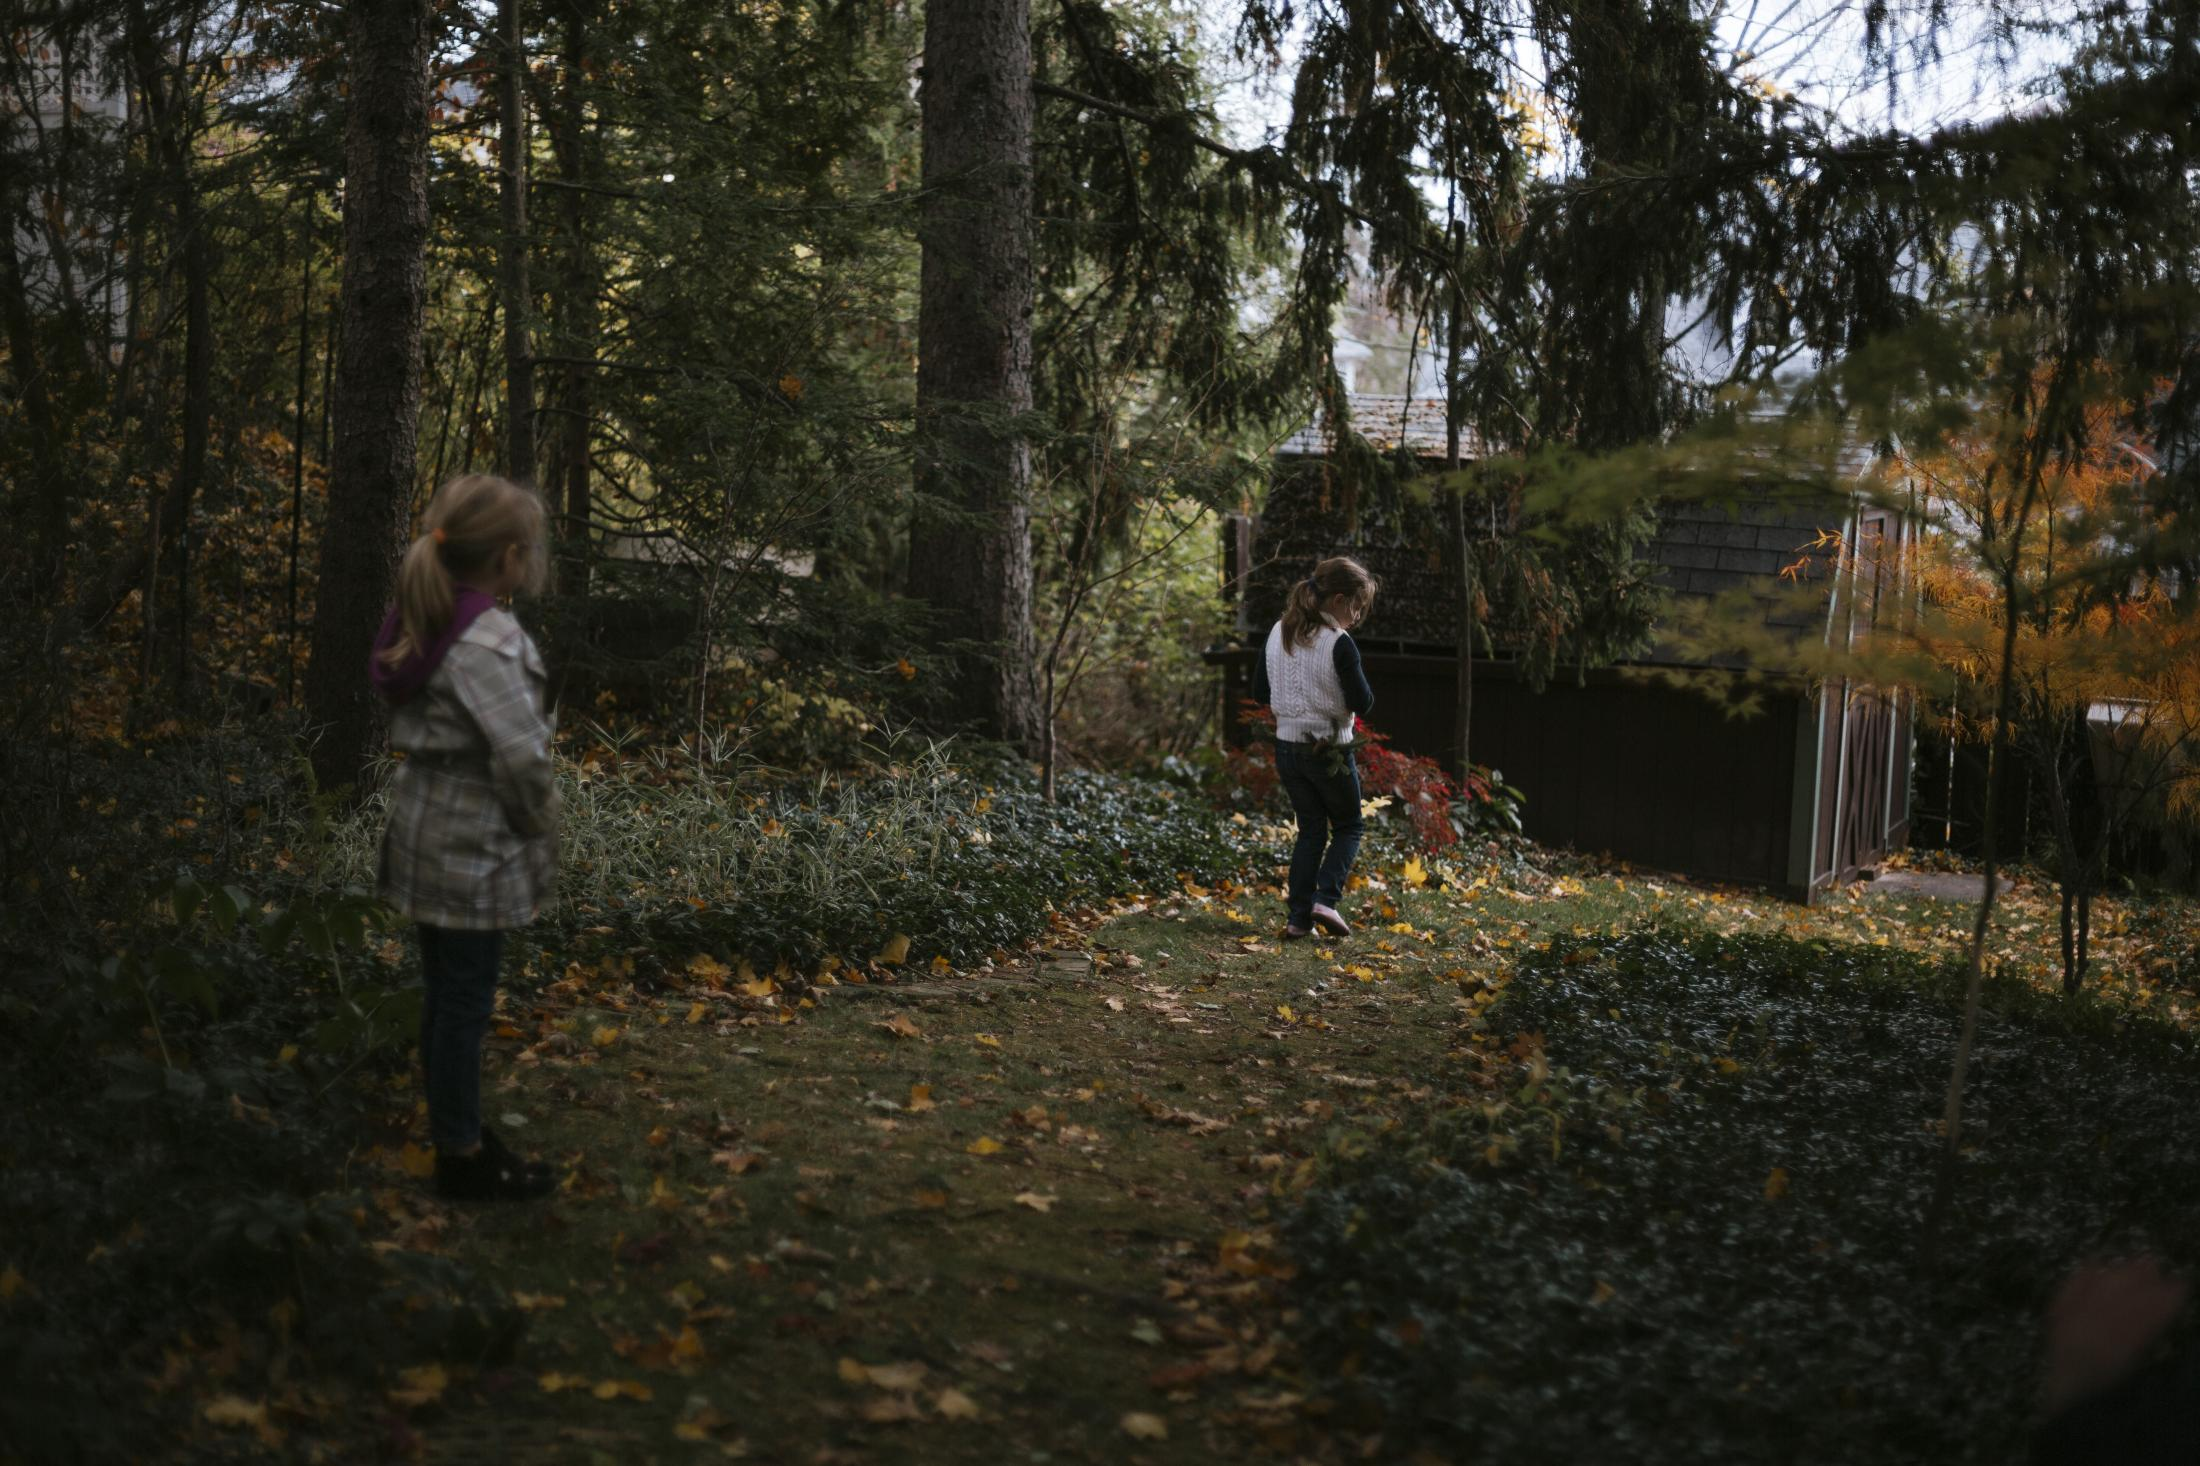 Lena (left) and Liesl walk through a family friend's garden. Liesl's mom discovered pine branches in the backyard that she thought would be perfect for Christmas decorations. Liesl agreed and started looking for pine branches. When she found branches she liked, she stuck them in the back pocket of her jeans.